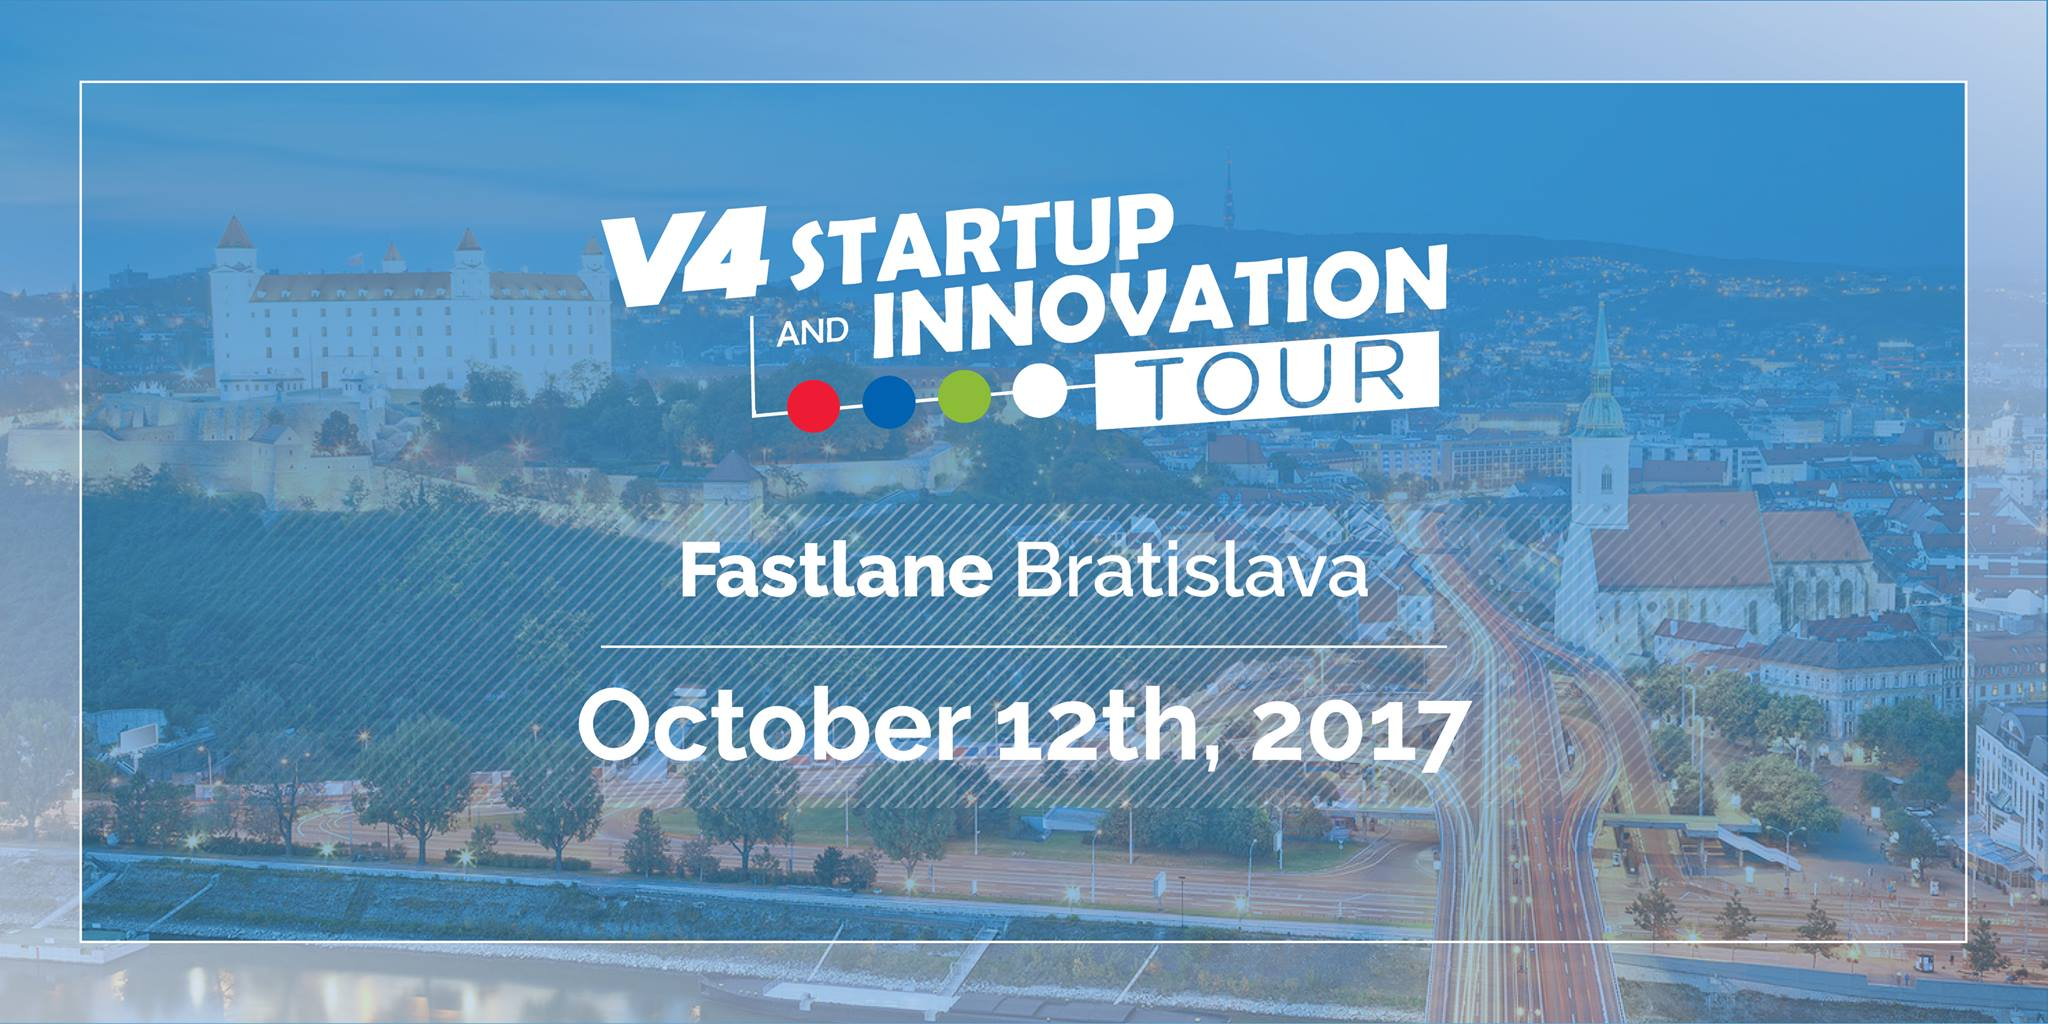 a67338e98c72 Enterprise Hungary organizes the V4 Startup and Innovation Tour Fastlane in  Bratislava